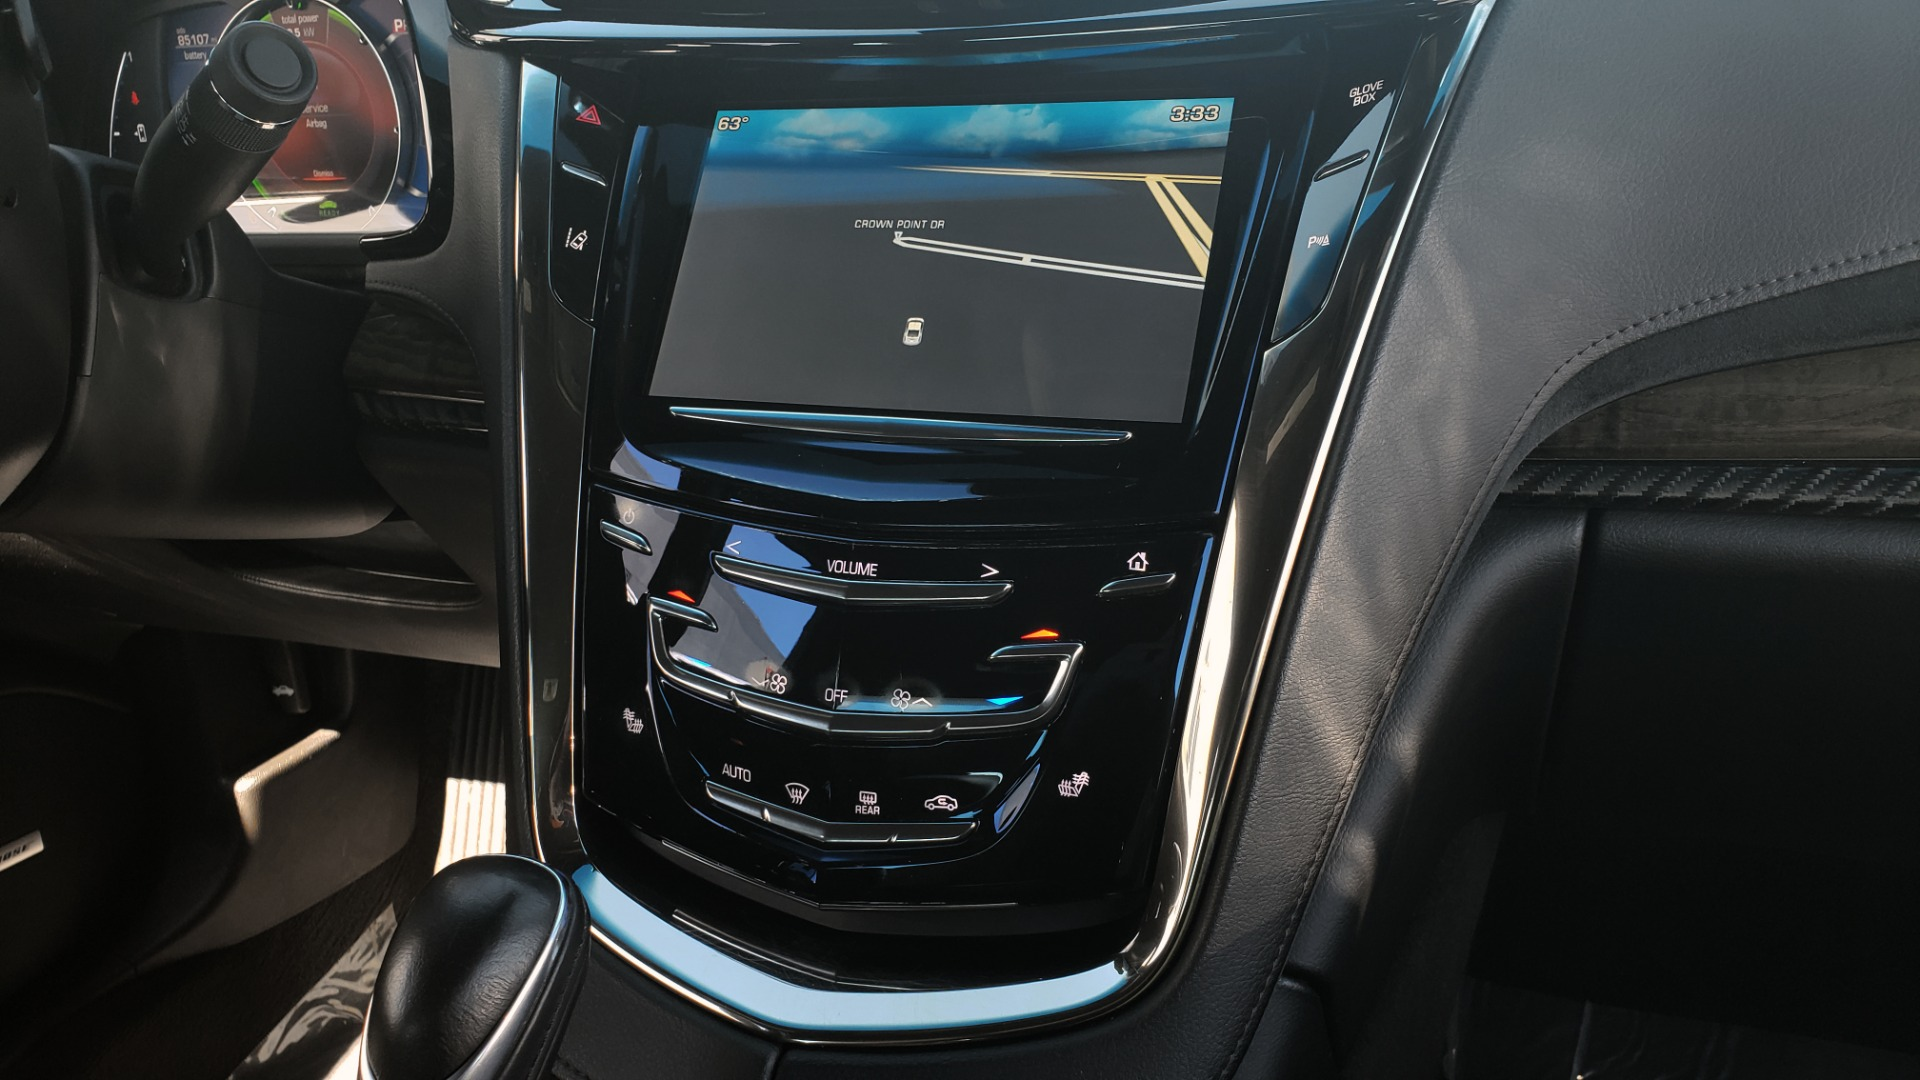 Used 2014 Cadillac ELR 2DR COUPE / HYBRID / NAV / BOSE / HEATED SEATS / REARVIEW for sale $19,995 at Formula Imports in Charlotte NC 28227 76